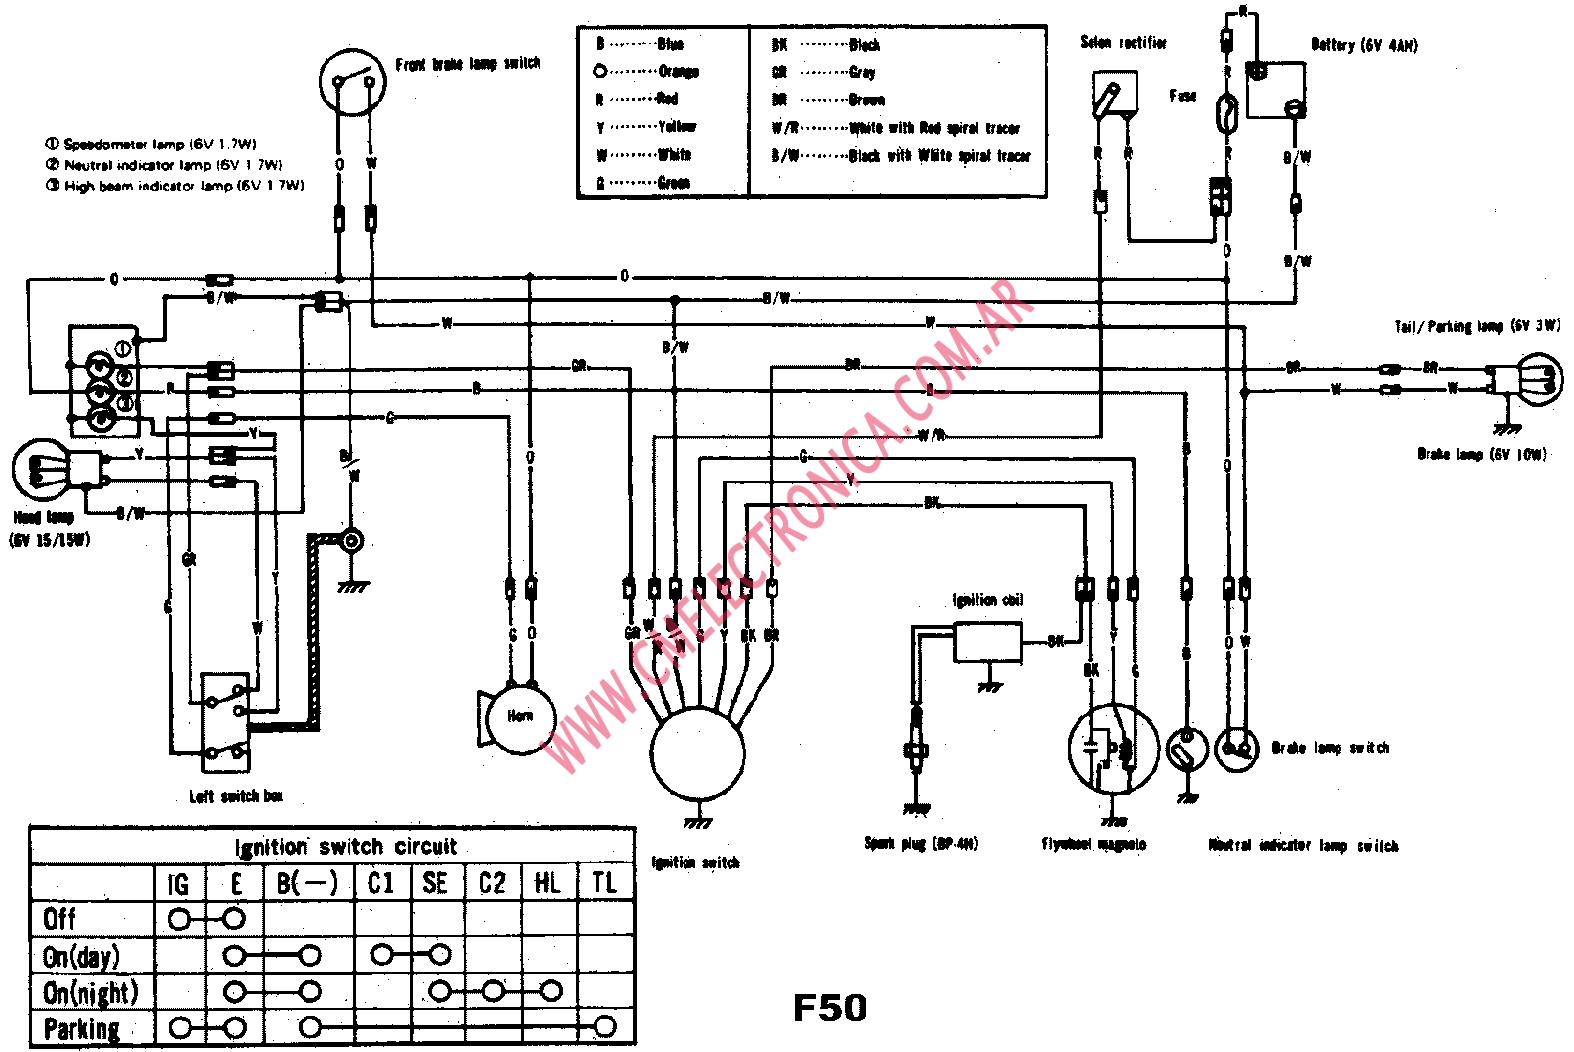 Suzuki 800 Intruder Wiring Diagram